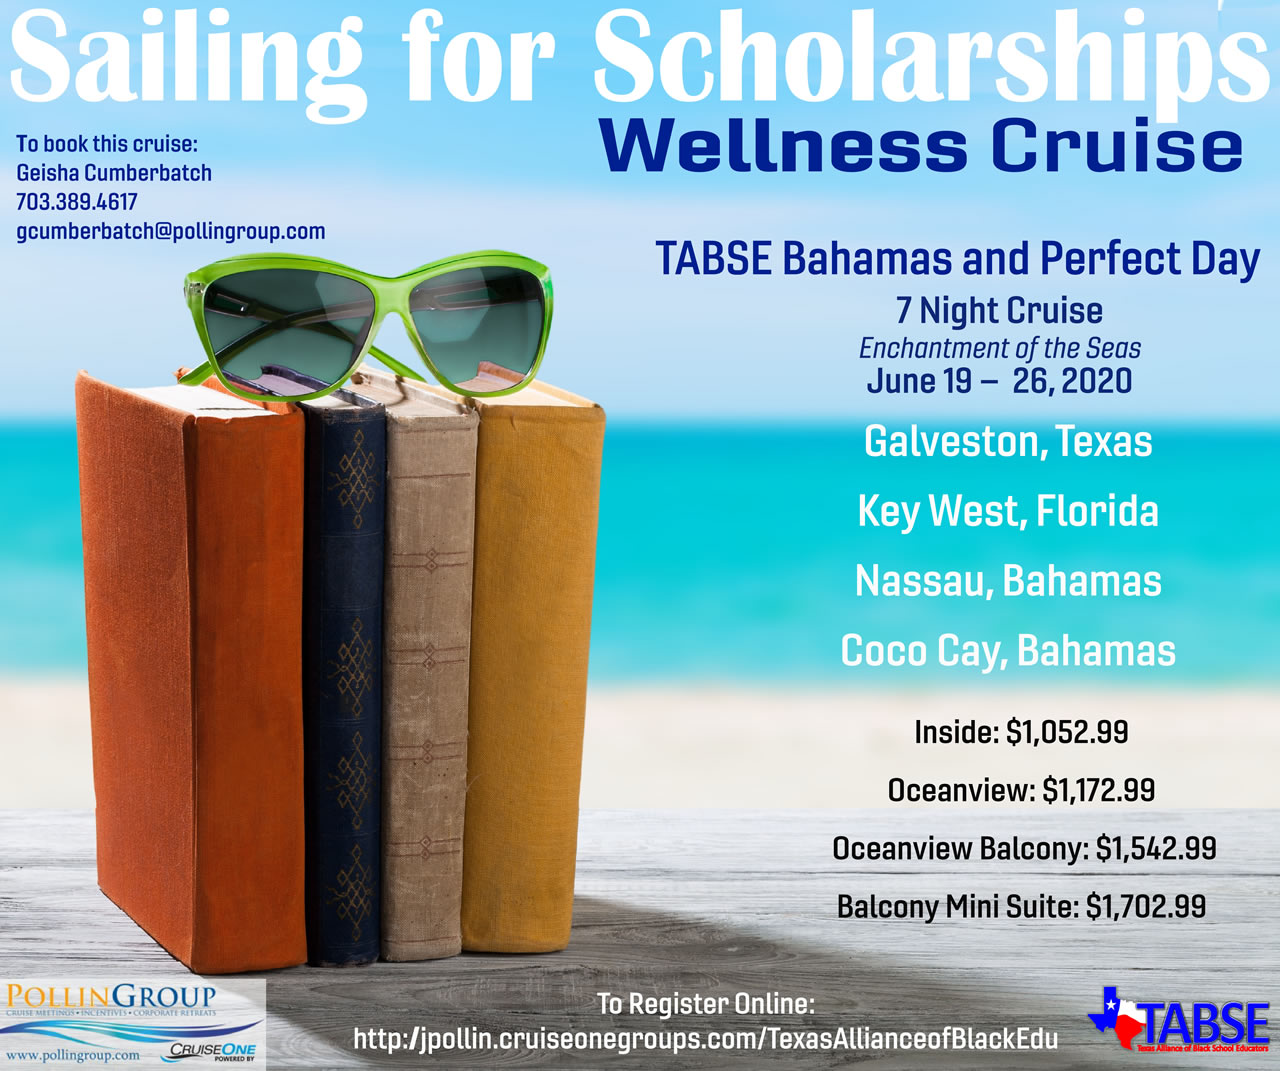 TABSE Sailing for Scholarships